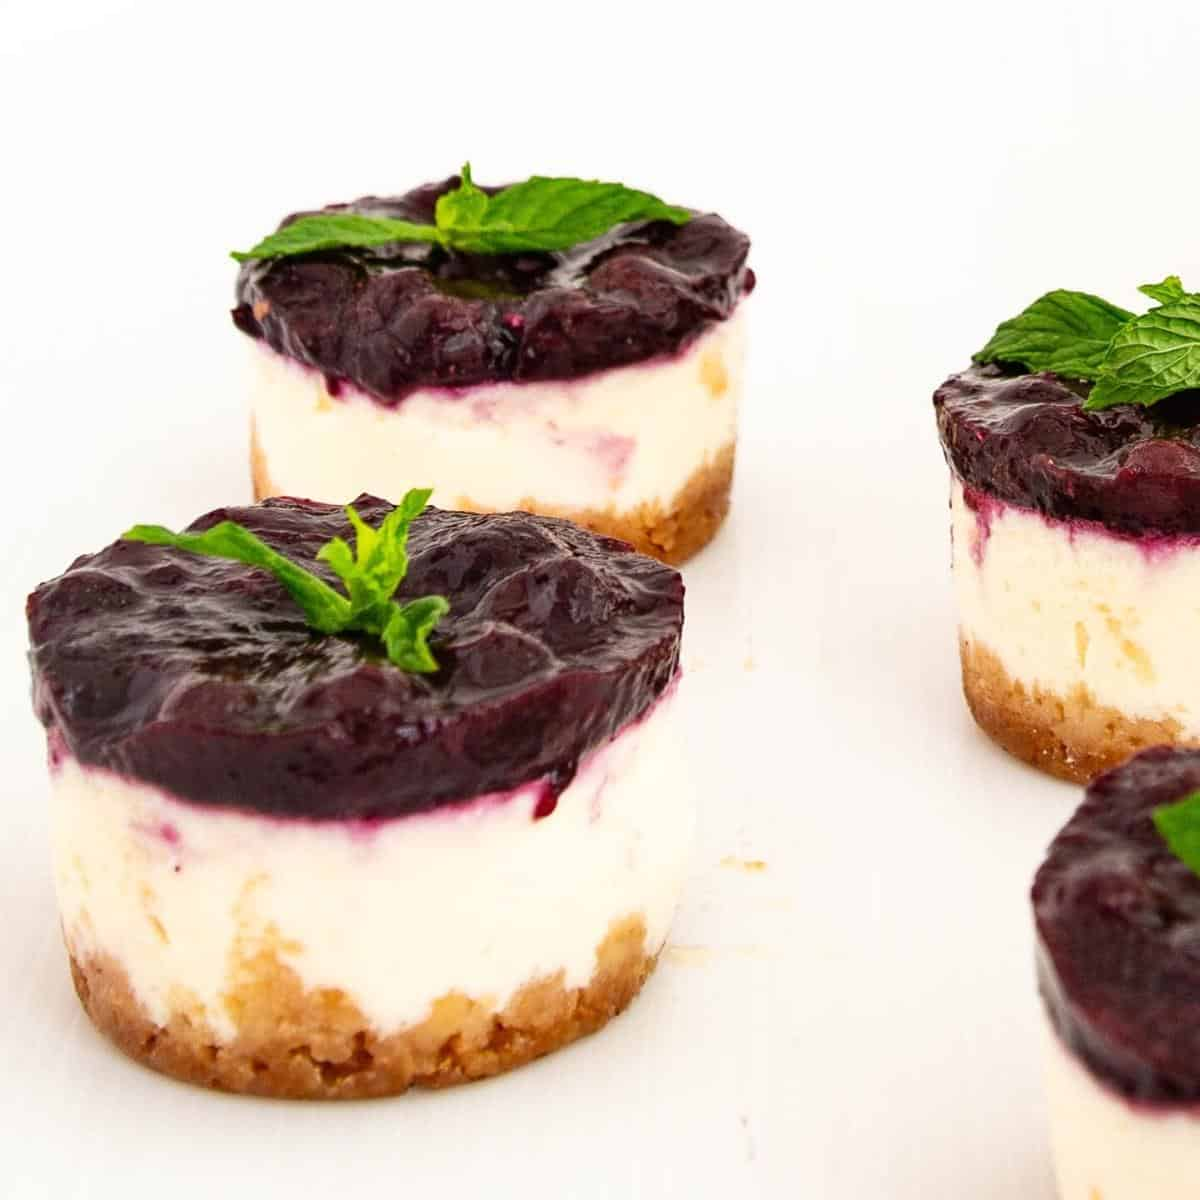 Mini cheesecakes on the table.